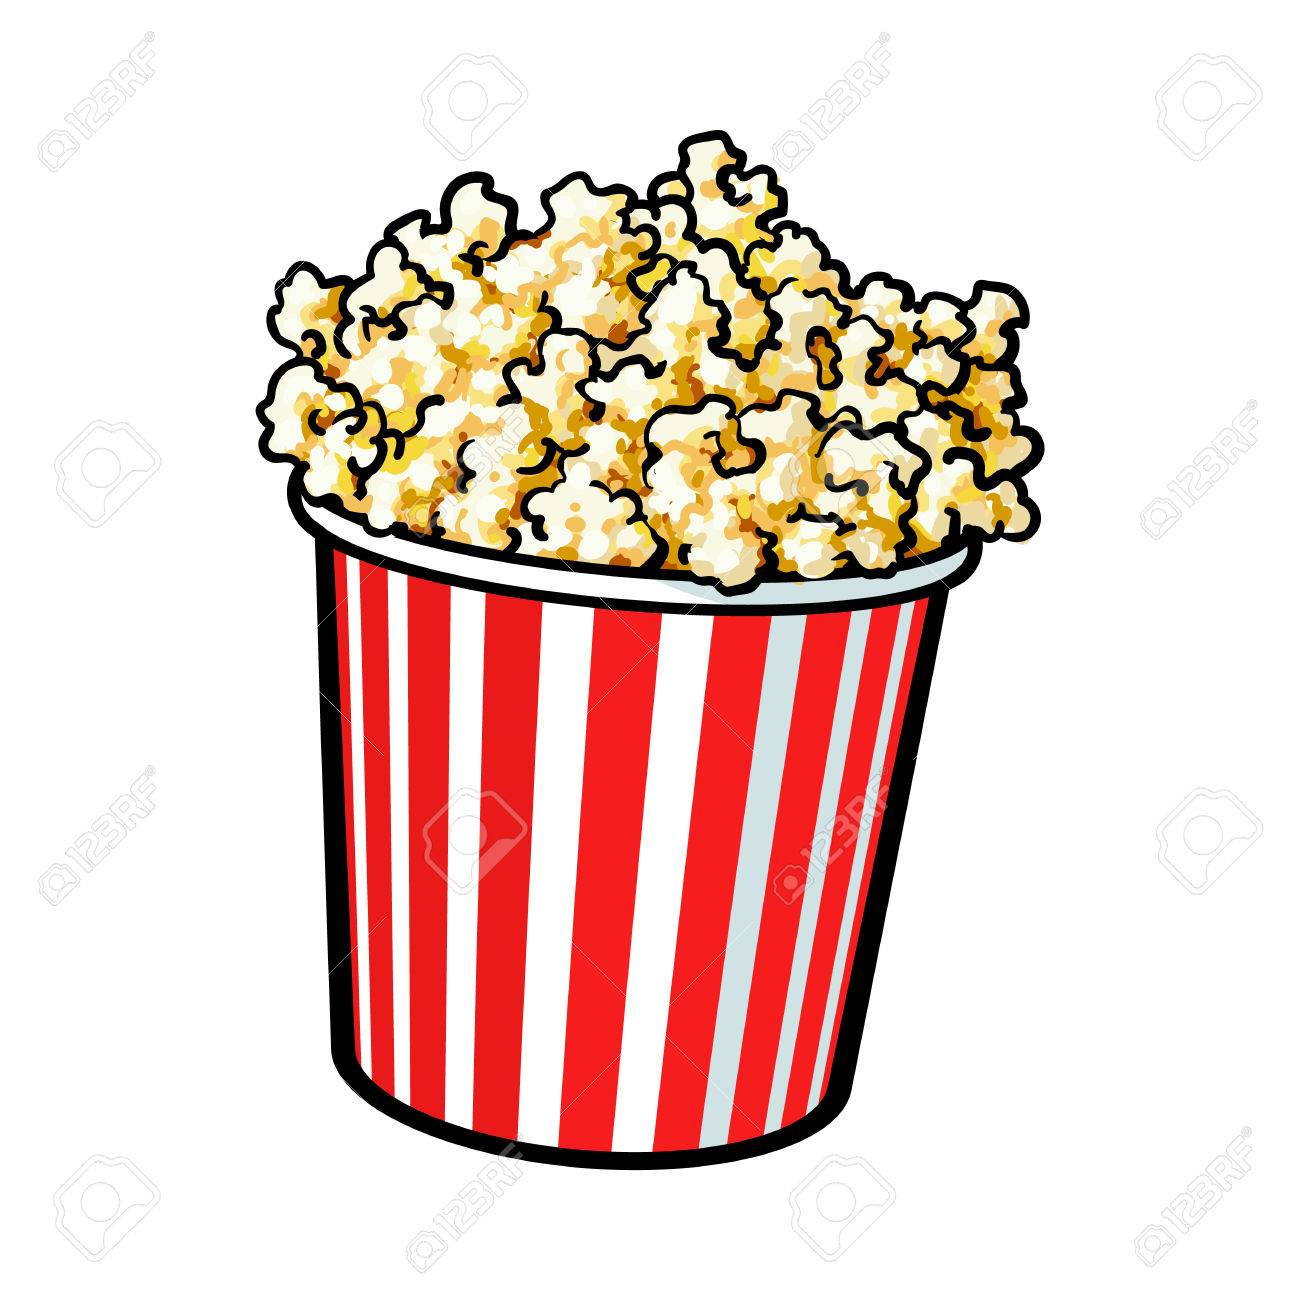 cinema popcorn in a big red and white striped bucket sketch rh 123rf com